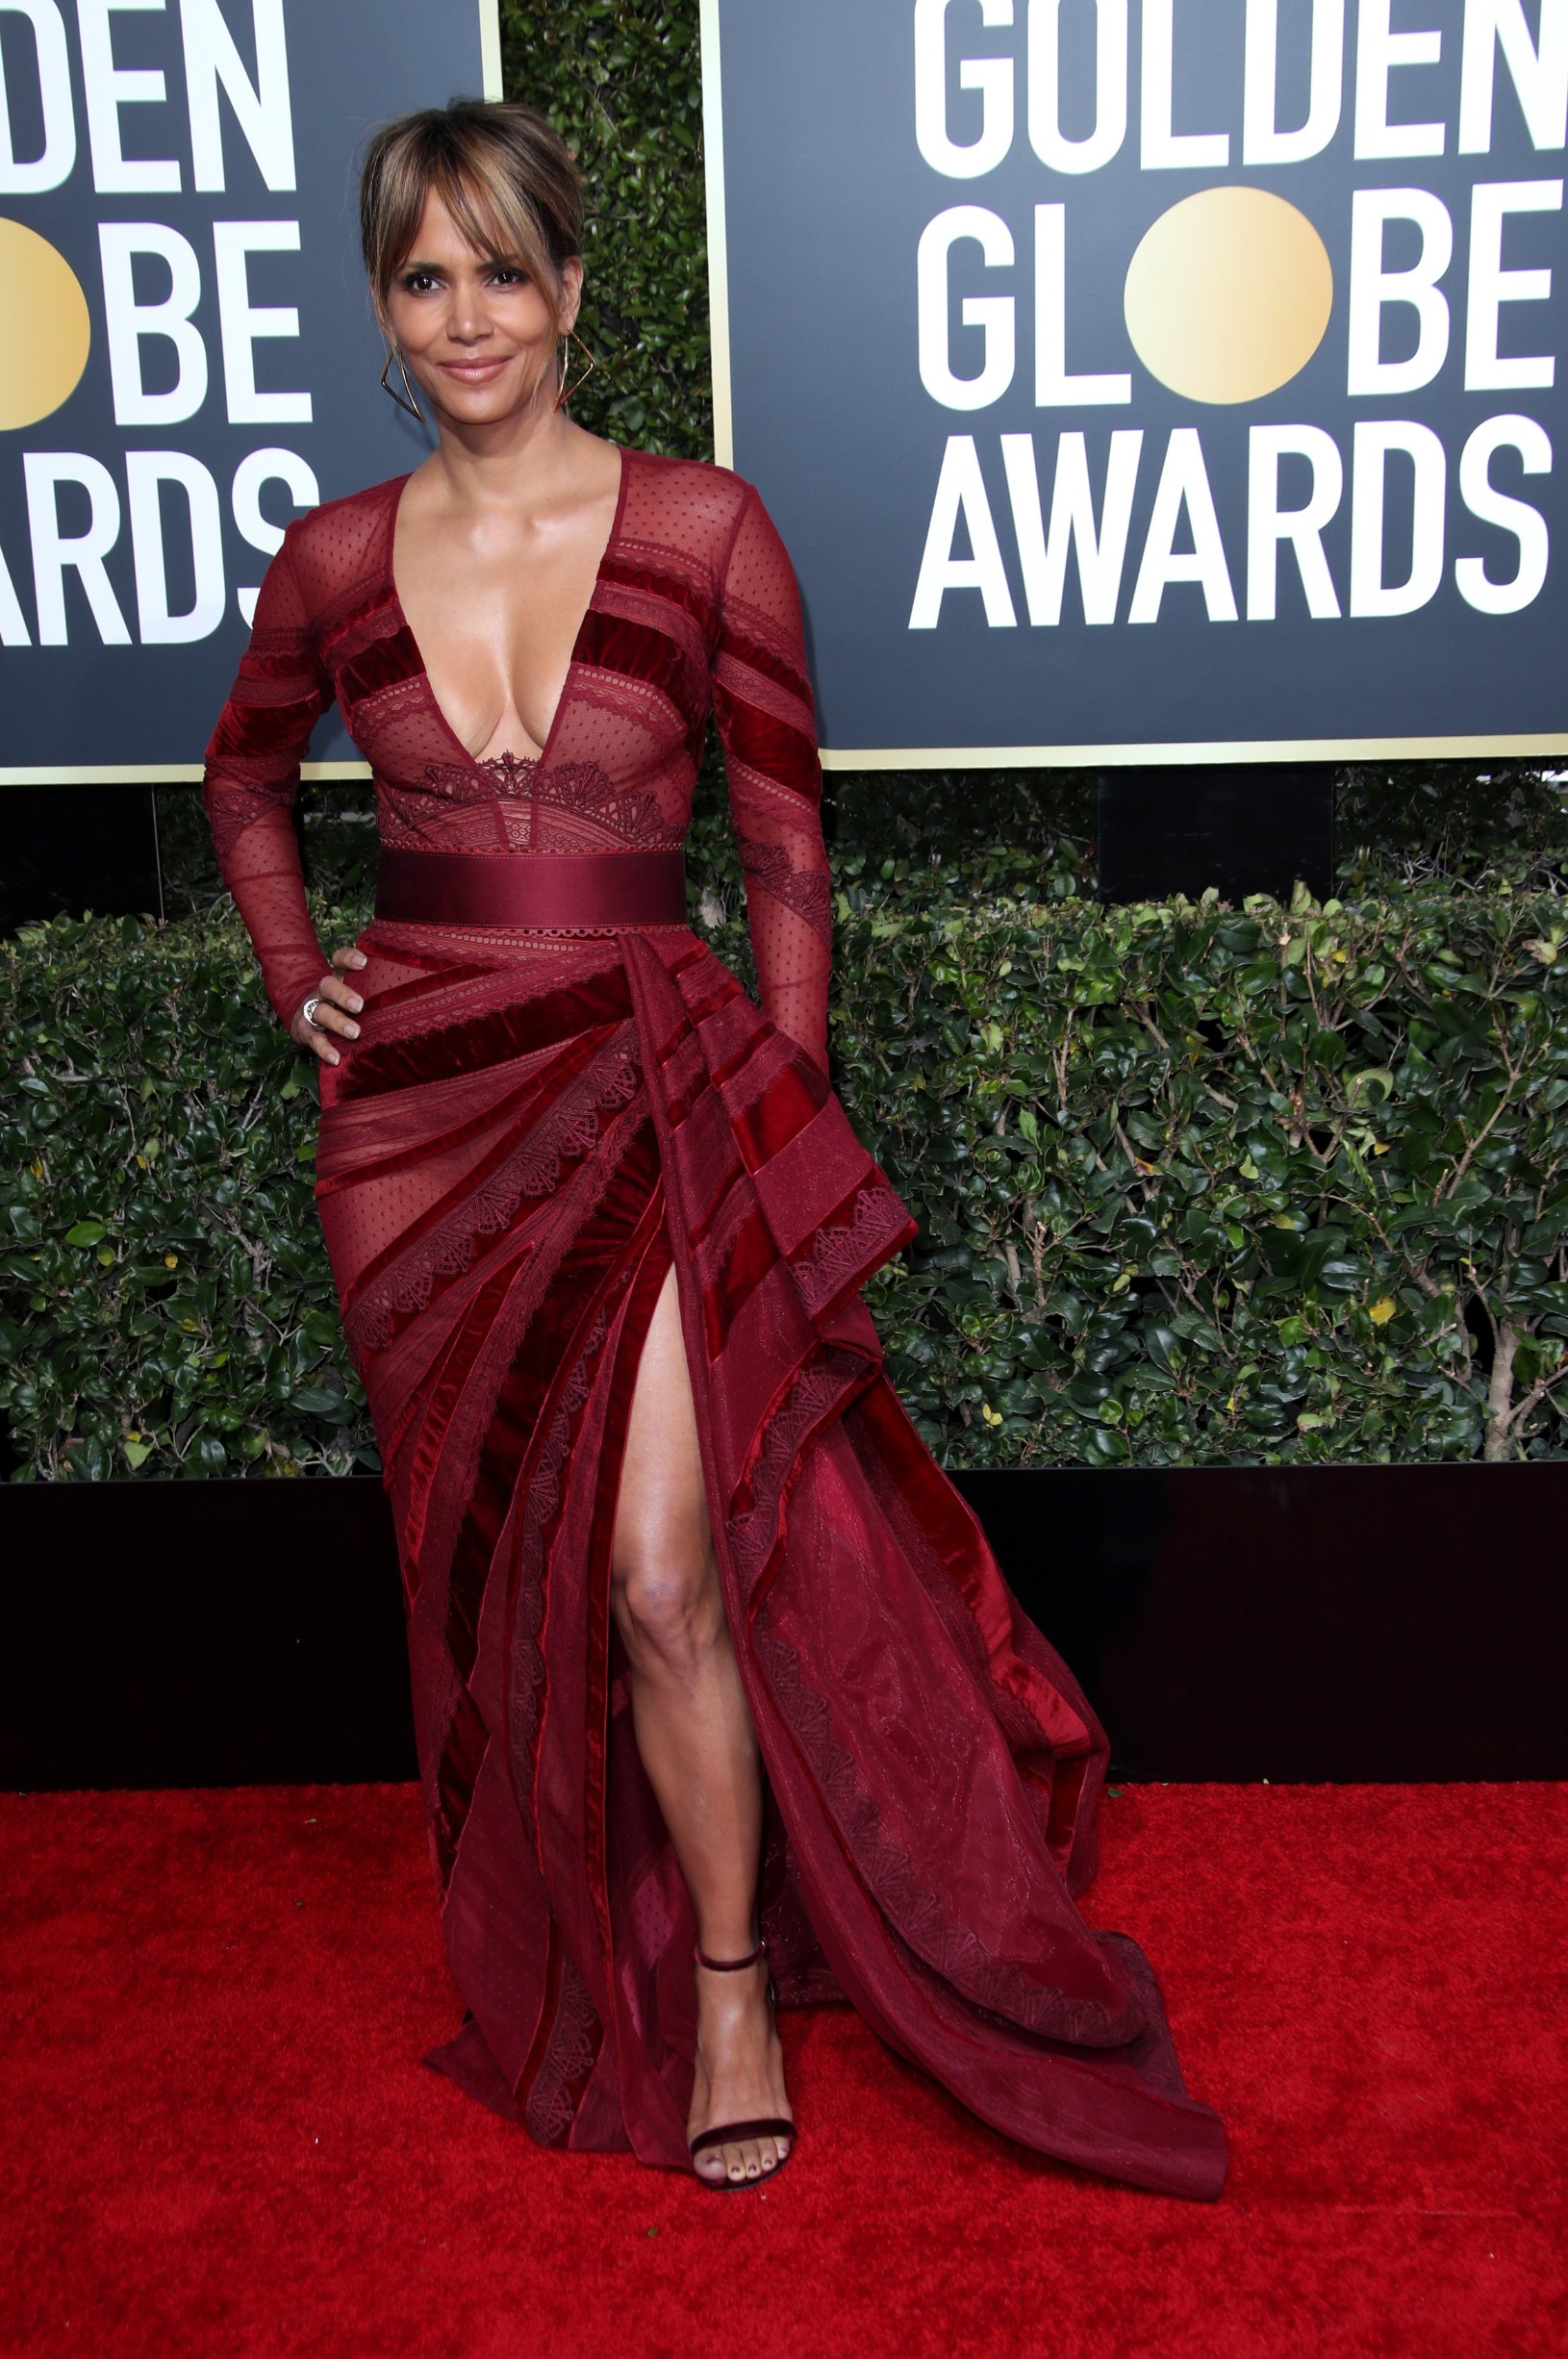 Halle Berry 76th Annual Golden Globe Awards, Arrivals, Los Angeles, USA - 06 Jan 2019,Image: 405623231, License: Rights-managed, Restrictions: , Model Release: no, Credit line: Matt Baron/BEI / Shutterstock Editorial / Profimedia